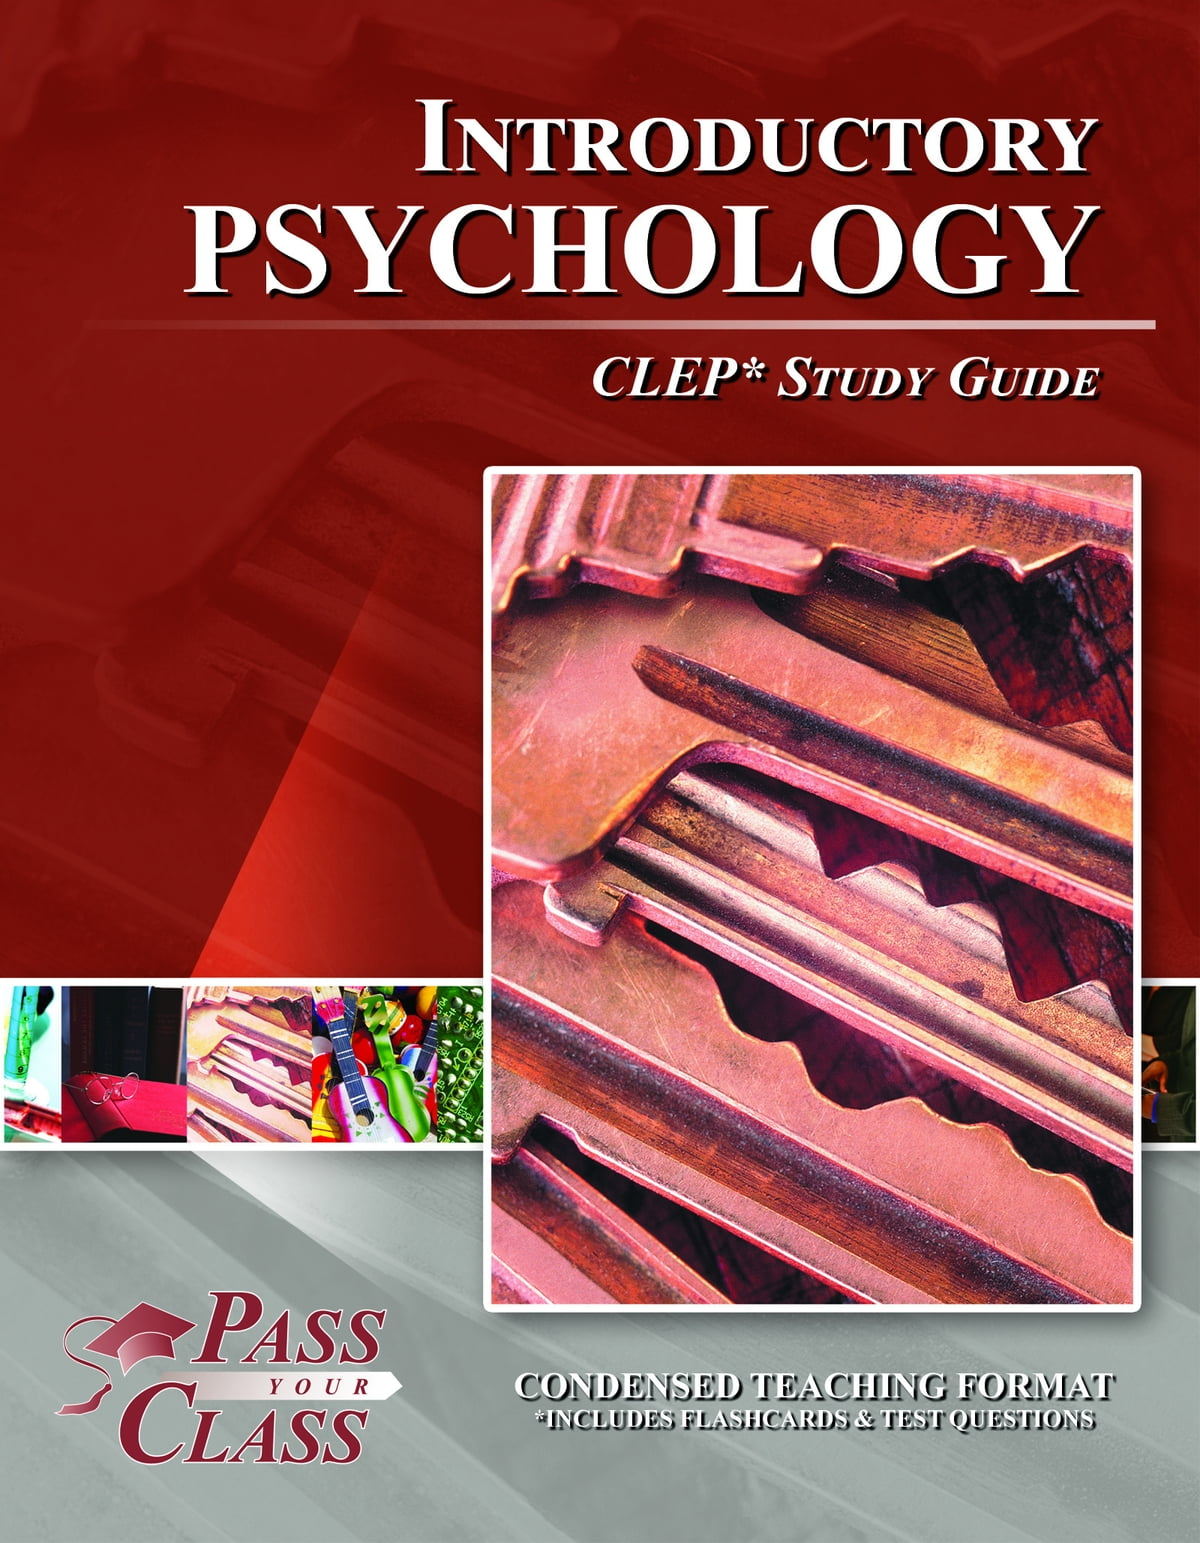 CLEP Introductory Psychology Test Study Guide ebook by Pass Your Class  Study Guides - Rakuten Kobo